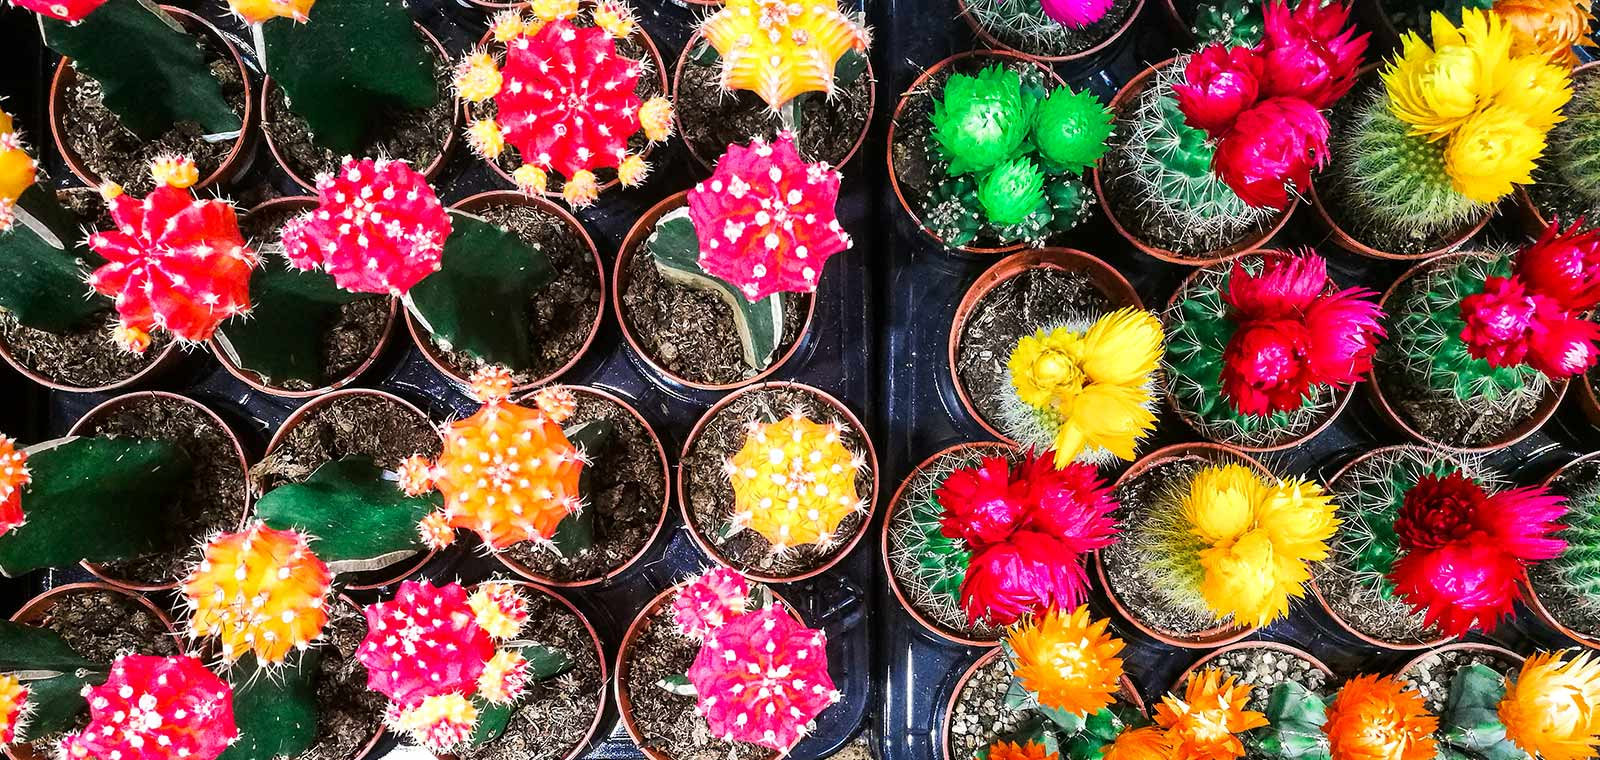 An overhead view of an array of multicolored exotic potted plants.